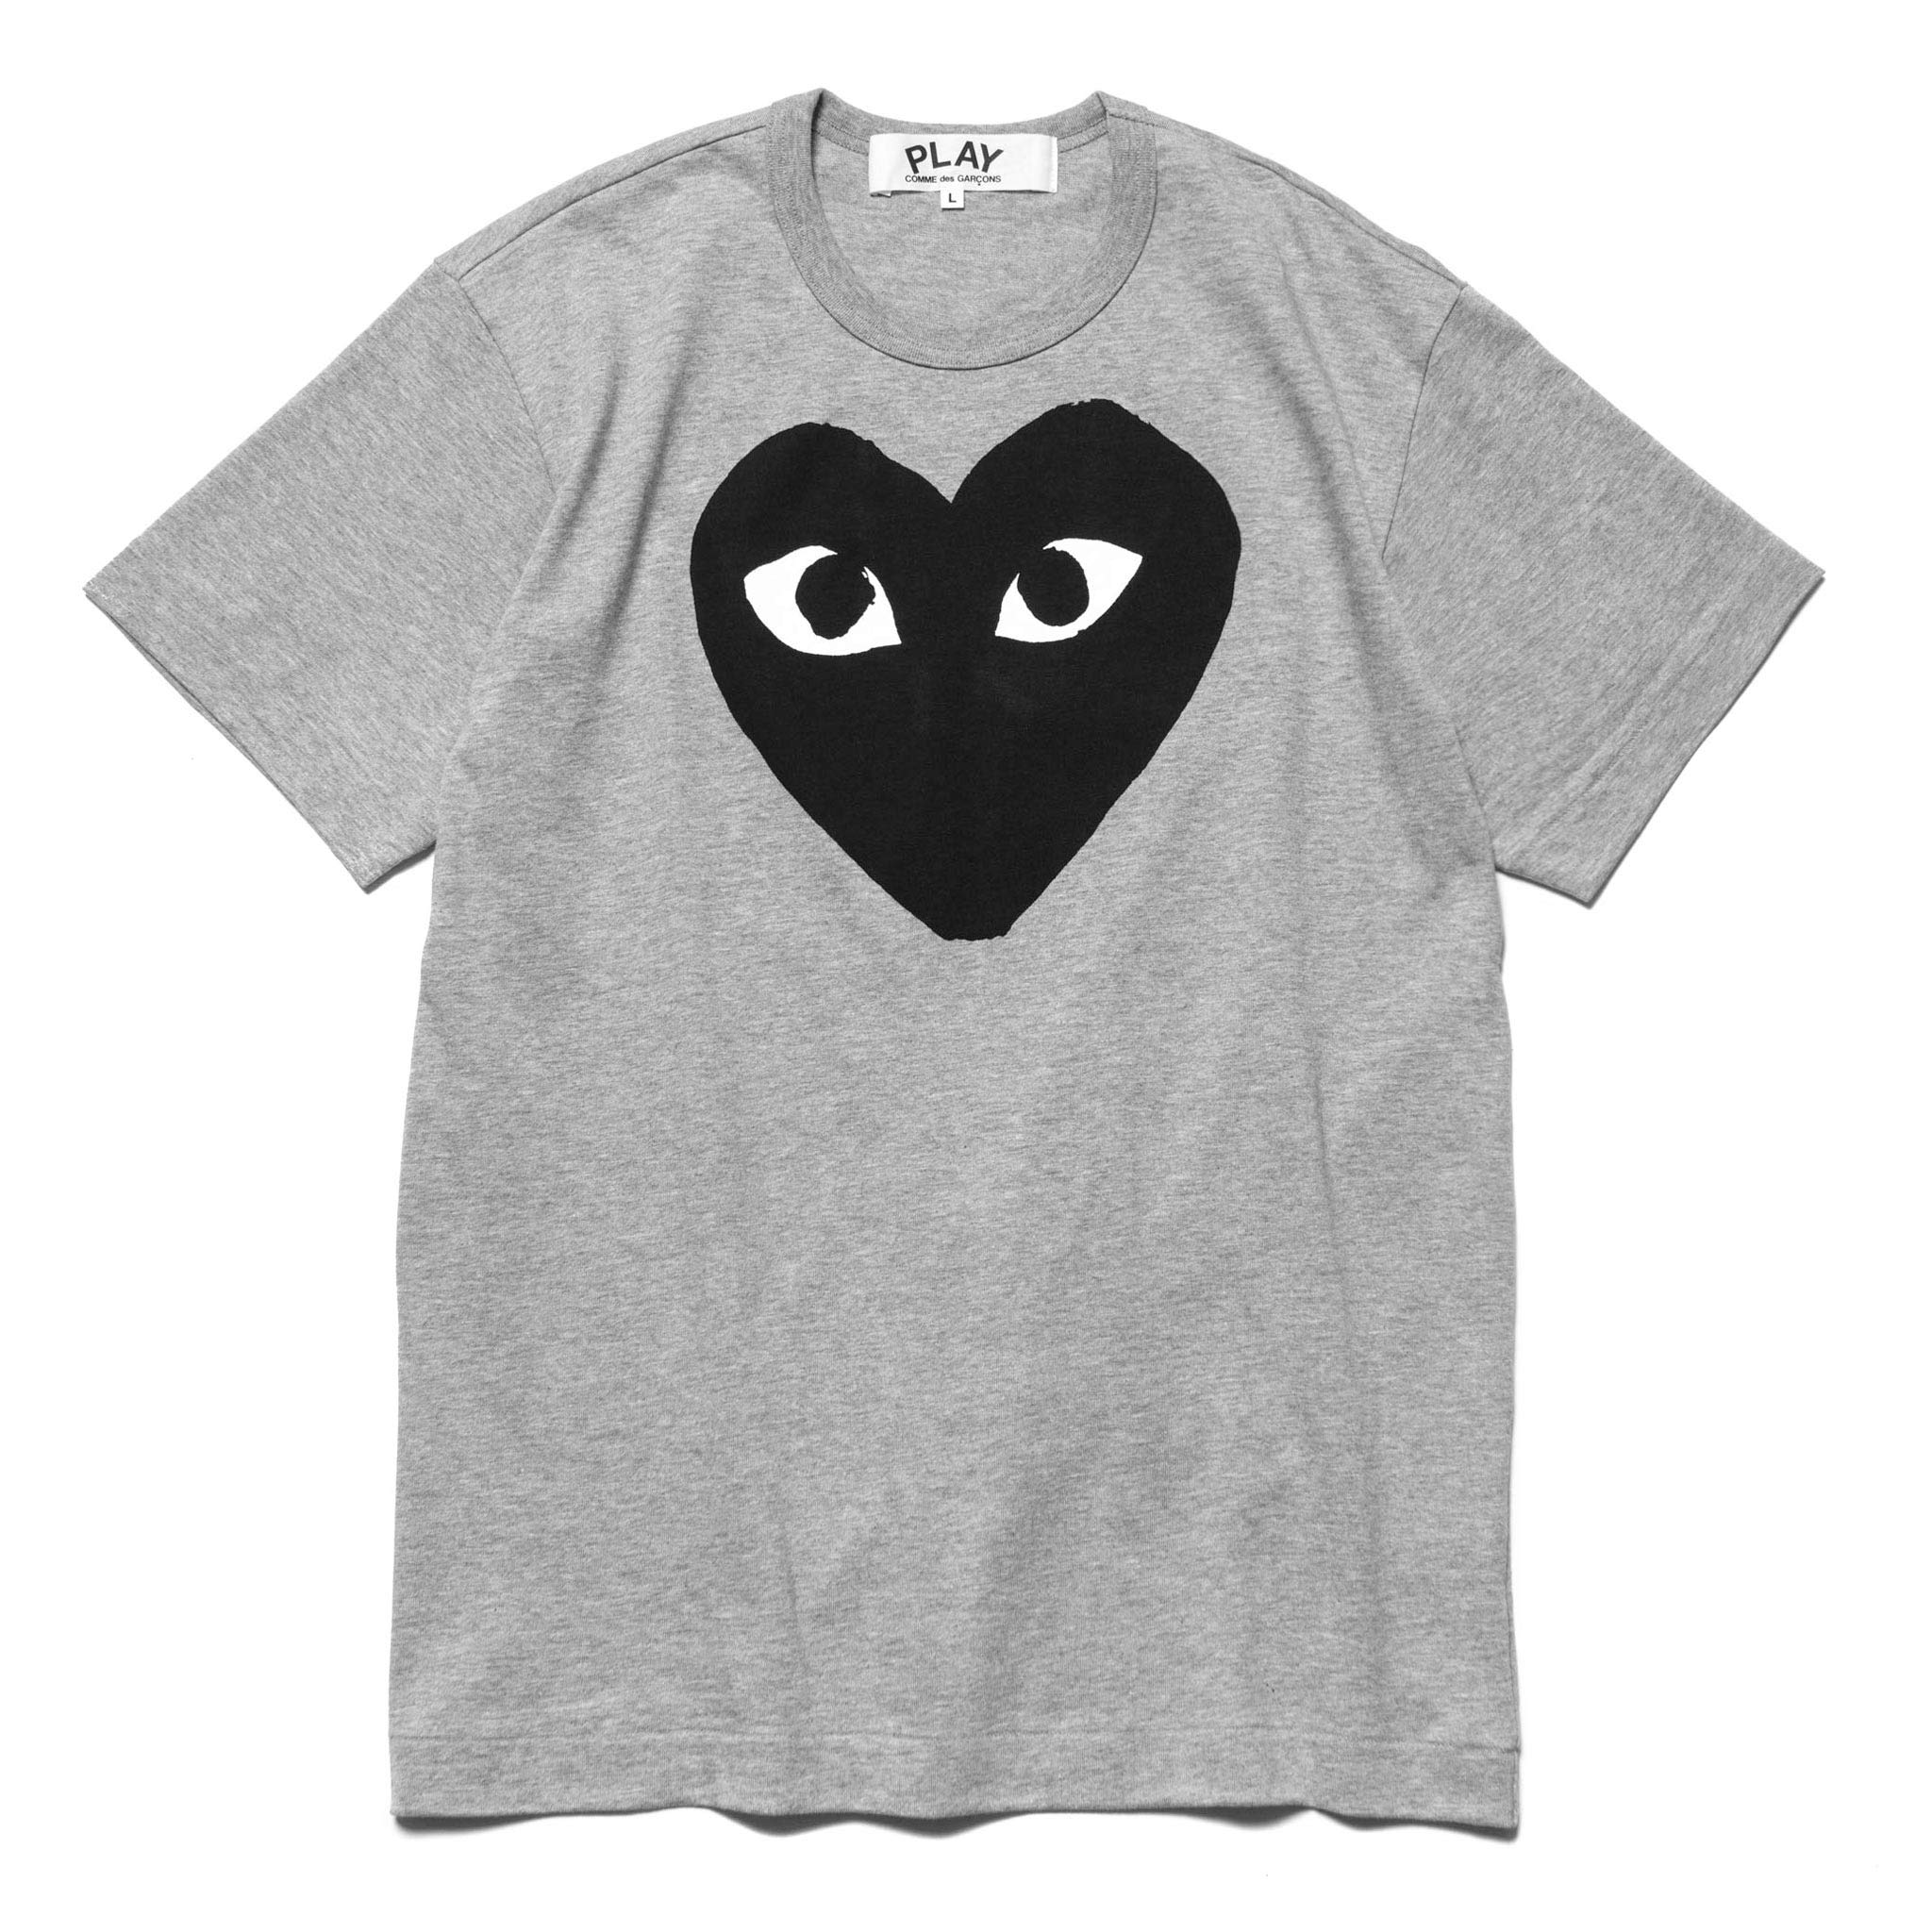 0cebc7a0 HAVEN-Comme-des-Garcons-PLAY-Black-Heart-Tee-_T084_-GRAY-1.jpg?v=1542899172